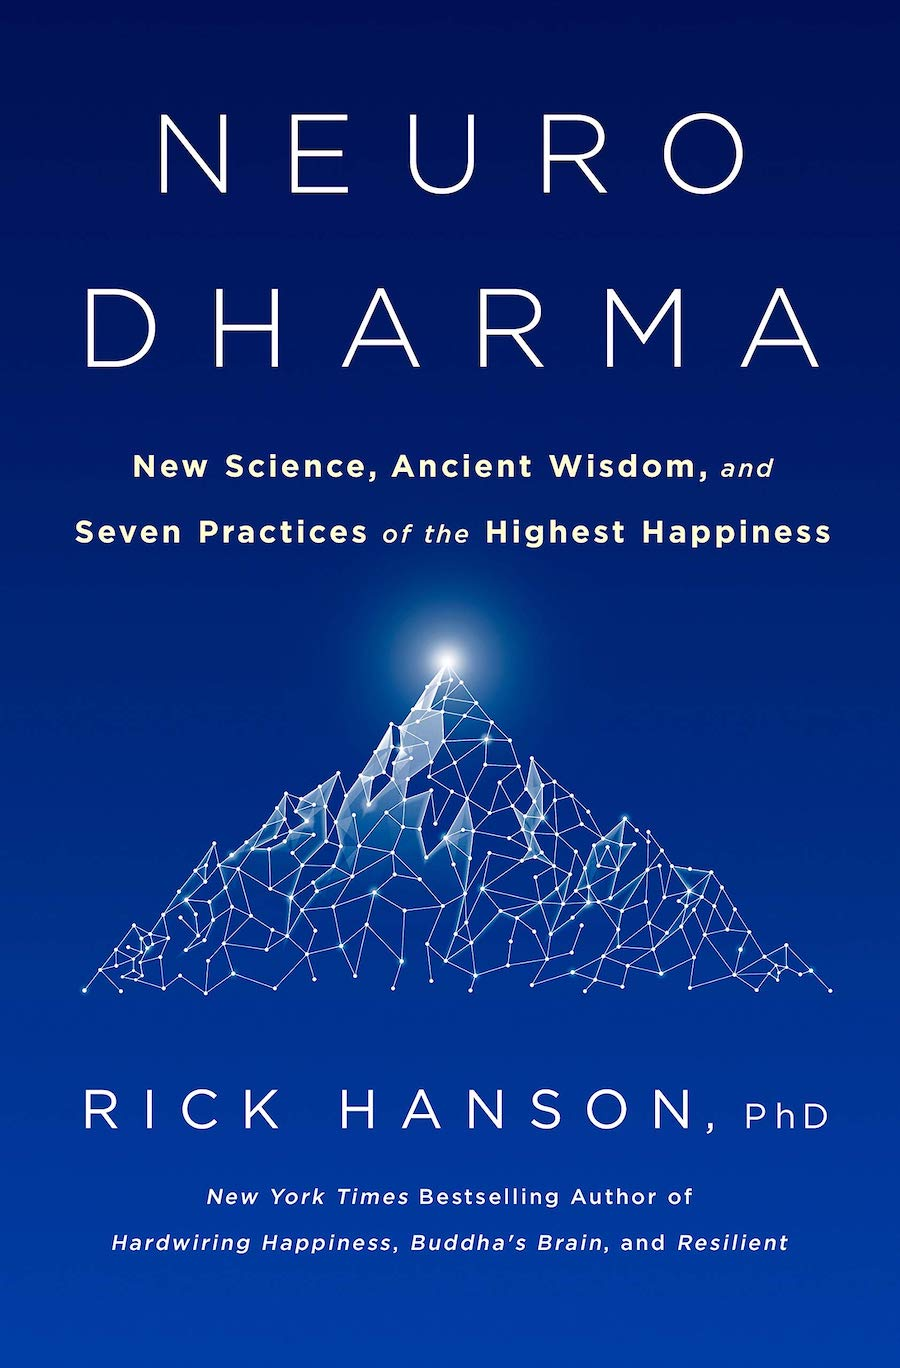 Book Cover Neurodharma New Science, Ancient Wisdom, and Seven Practices of the Highest Happiness